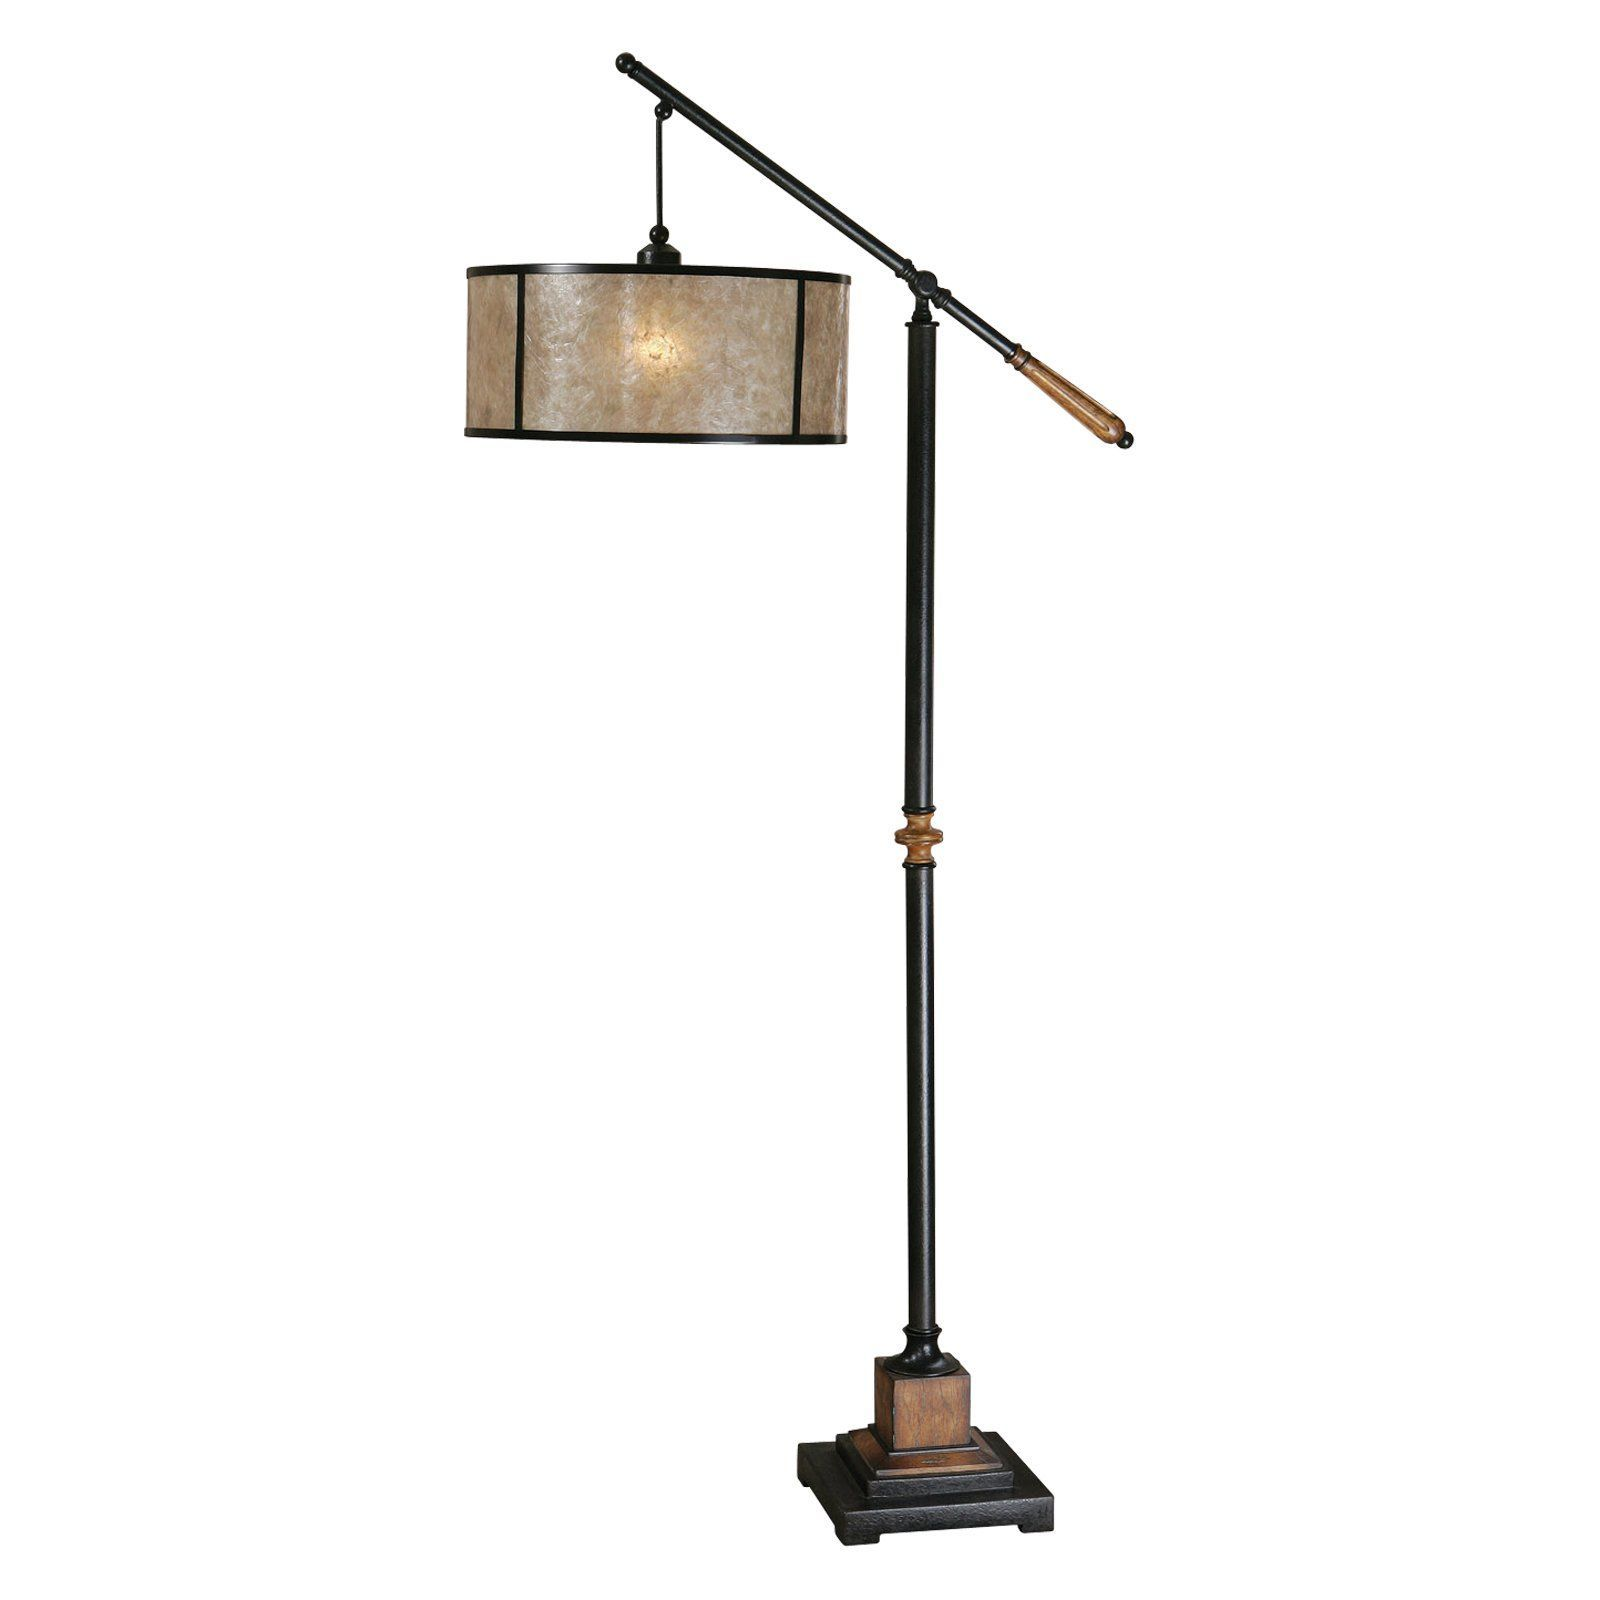 Uttermost Sitka Floor Lamp In Aged Black And Distressed Rustic Mahogany About The Mission Of Company Is Simple To Make Great